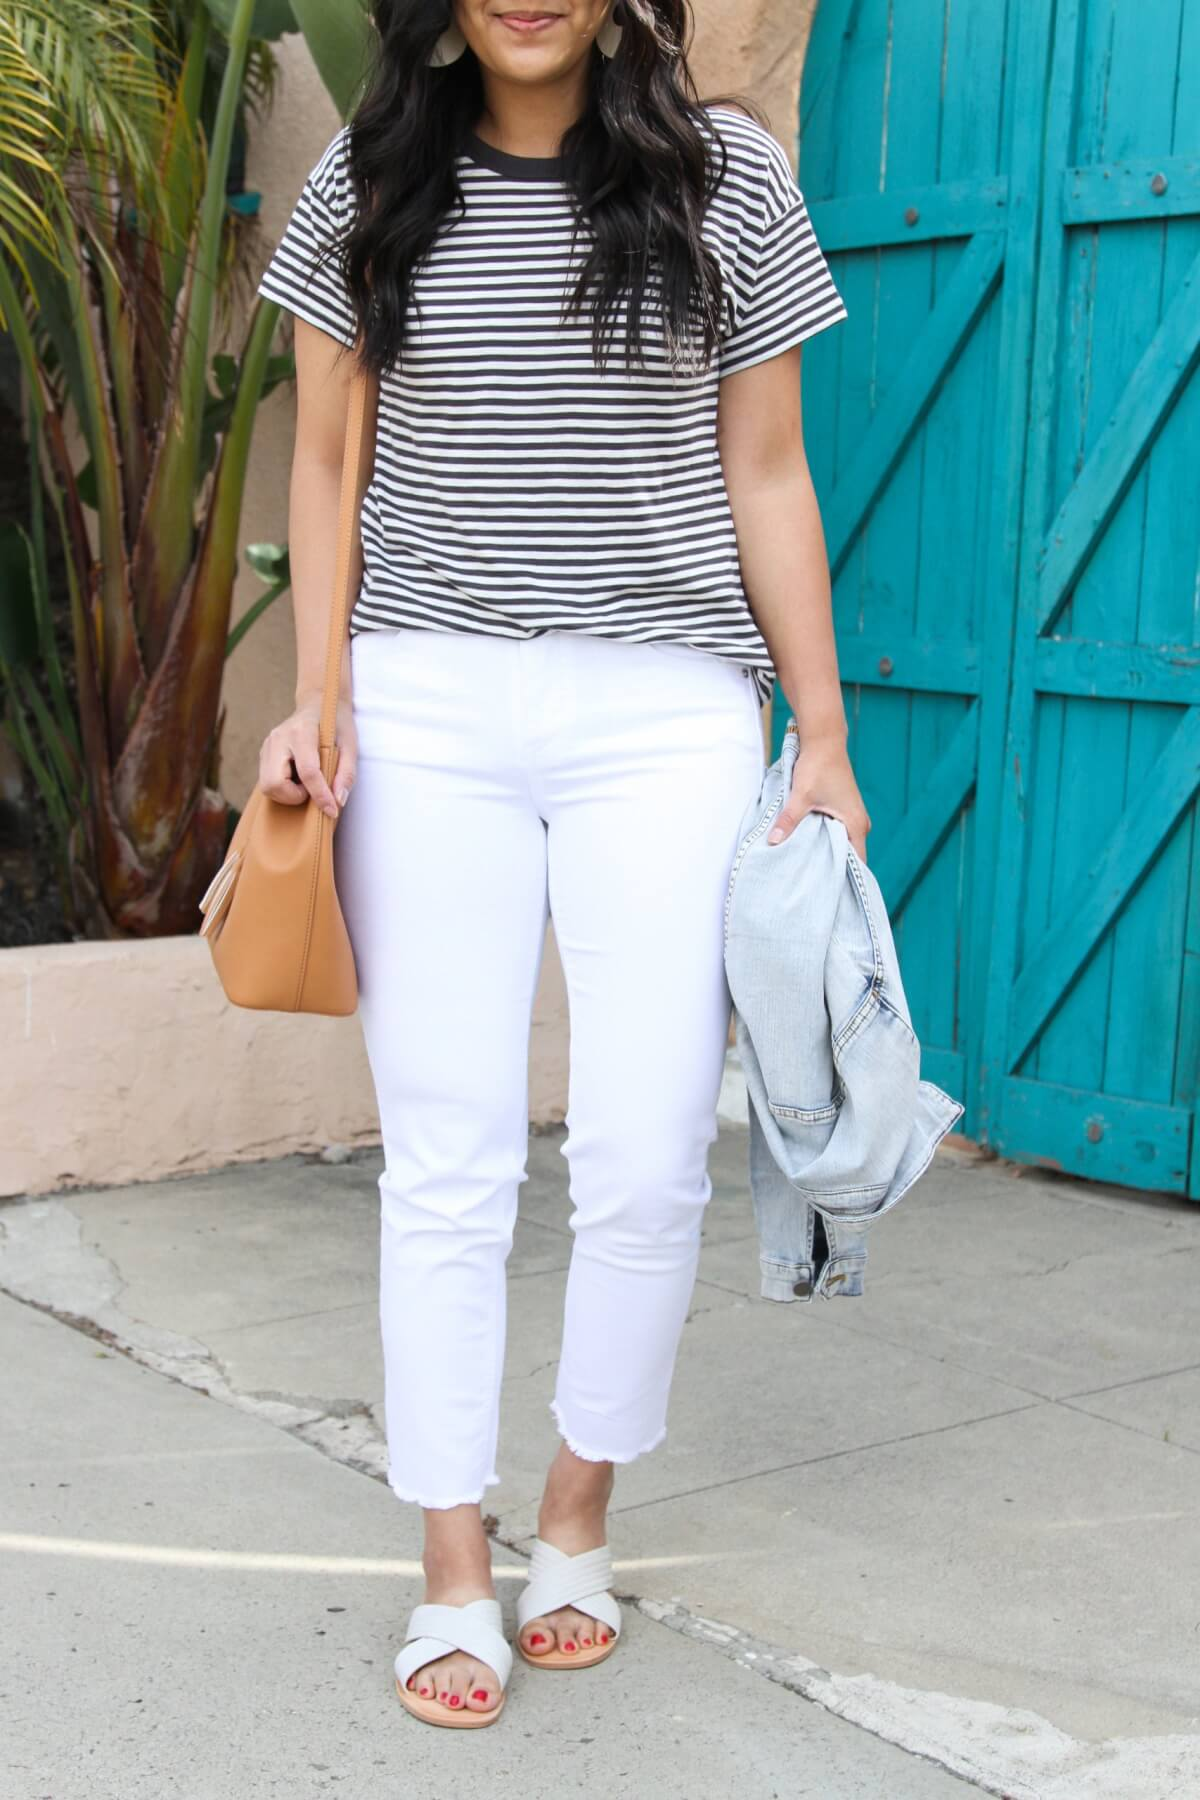 Easy to Wear Shoes for Spring: DV by Dolce Vita Lyra white slides + Madewell black and white striped tee + white straight leg jeans + denim jacket + white earrings + tan bag close up